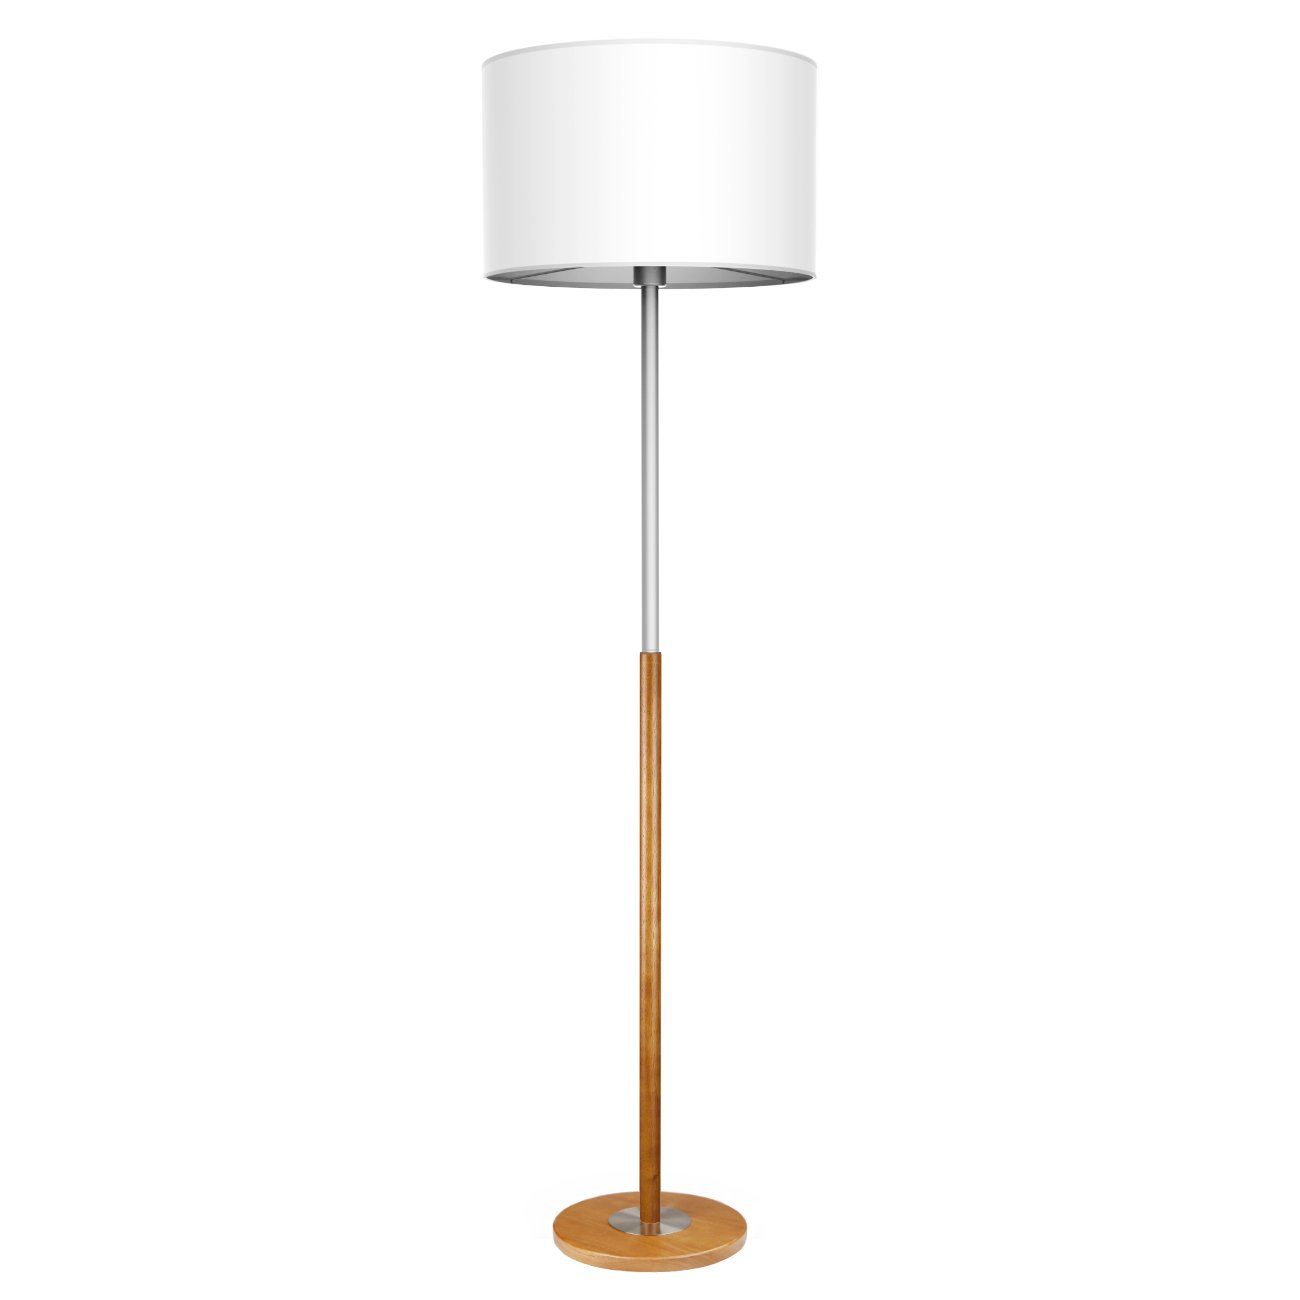 1f2d8962833f Wood Floor Lamp Tomons Standing Lamp for Bedrooms Living Room Decor with  Fabric Lampshade Brown Wood Base Warm White Lighting, 8W LED Bulb Included  ...